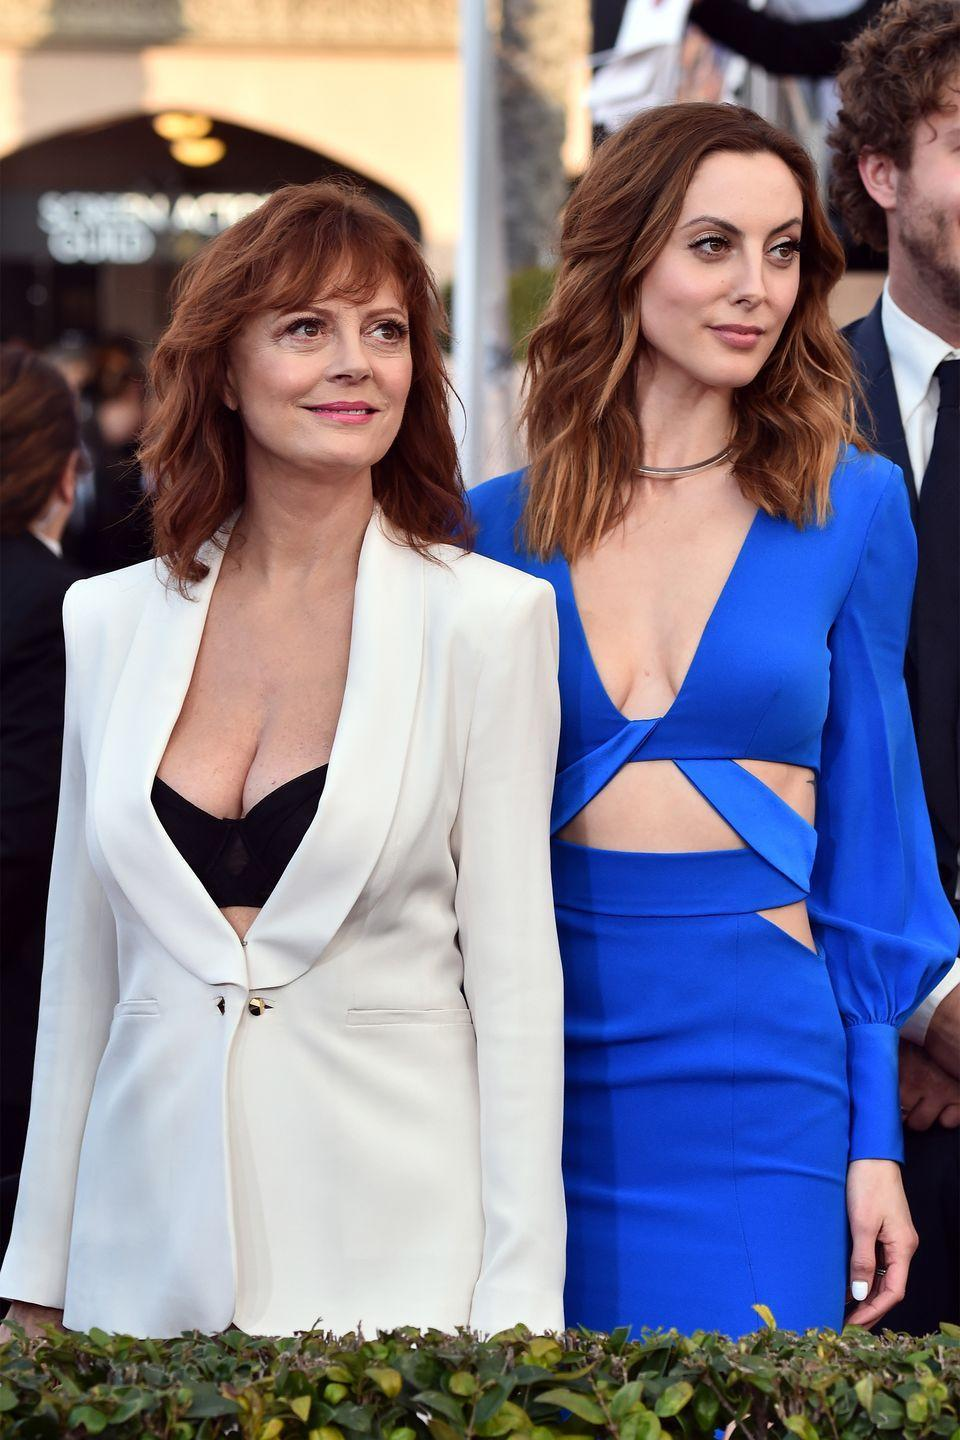 <p>Actress Susan Sarandon and her (also) actress daughter Eva Amurri would be completely identical if Amurri wasn't nearly a head taller than her mother. </p>